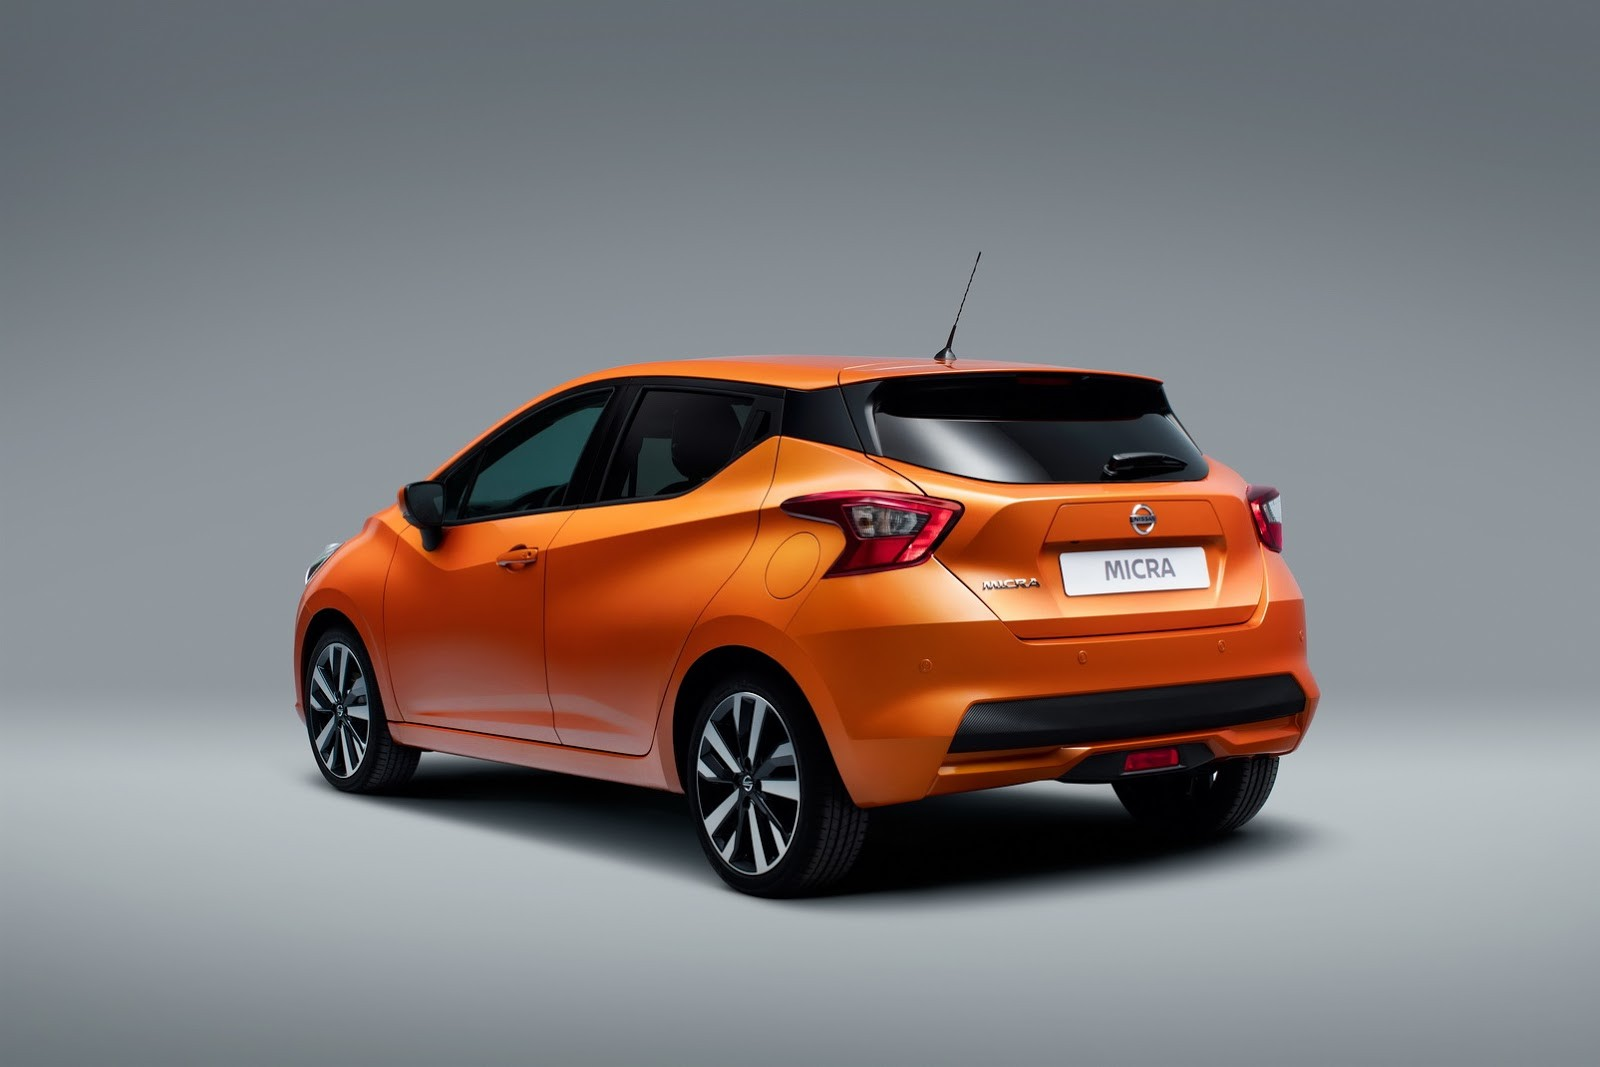 2018 nissan micra nismo looks hot but will it receive the clio rs engine autoevolution. Black Bedroom Furniture Sets. Home Design Ideas